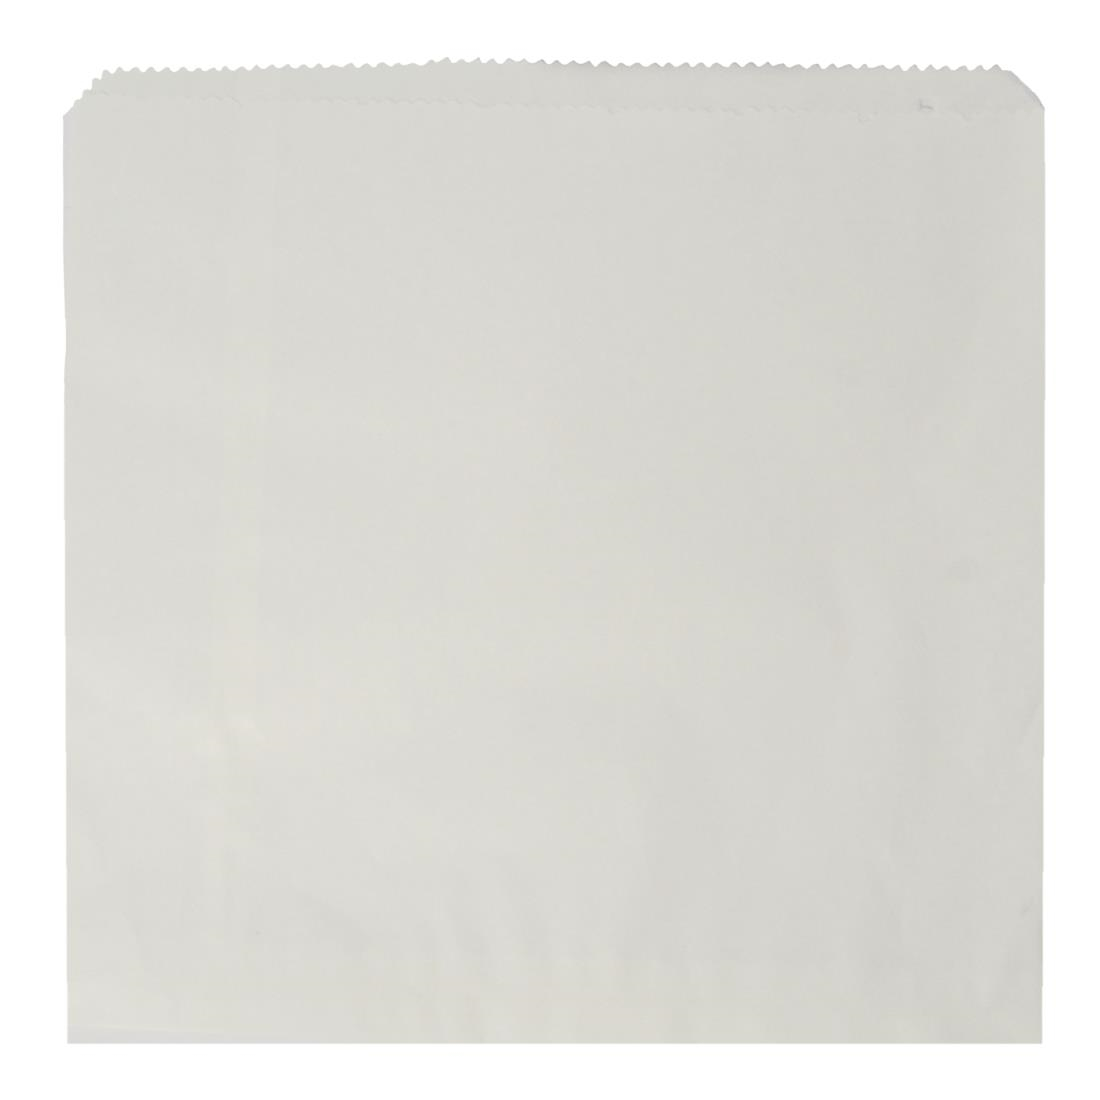 Vegware Compostable Recycled Flat Sandwich Bags White Pack of 1000